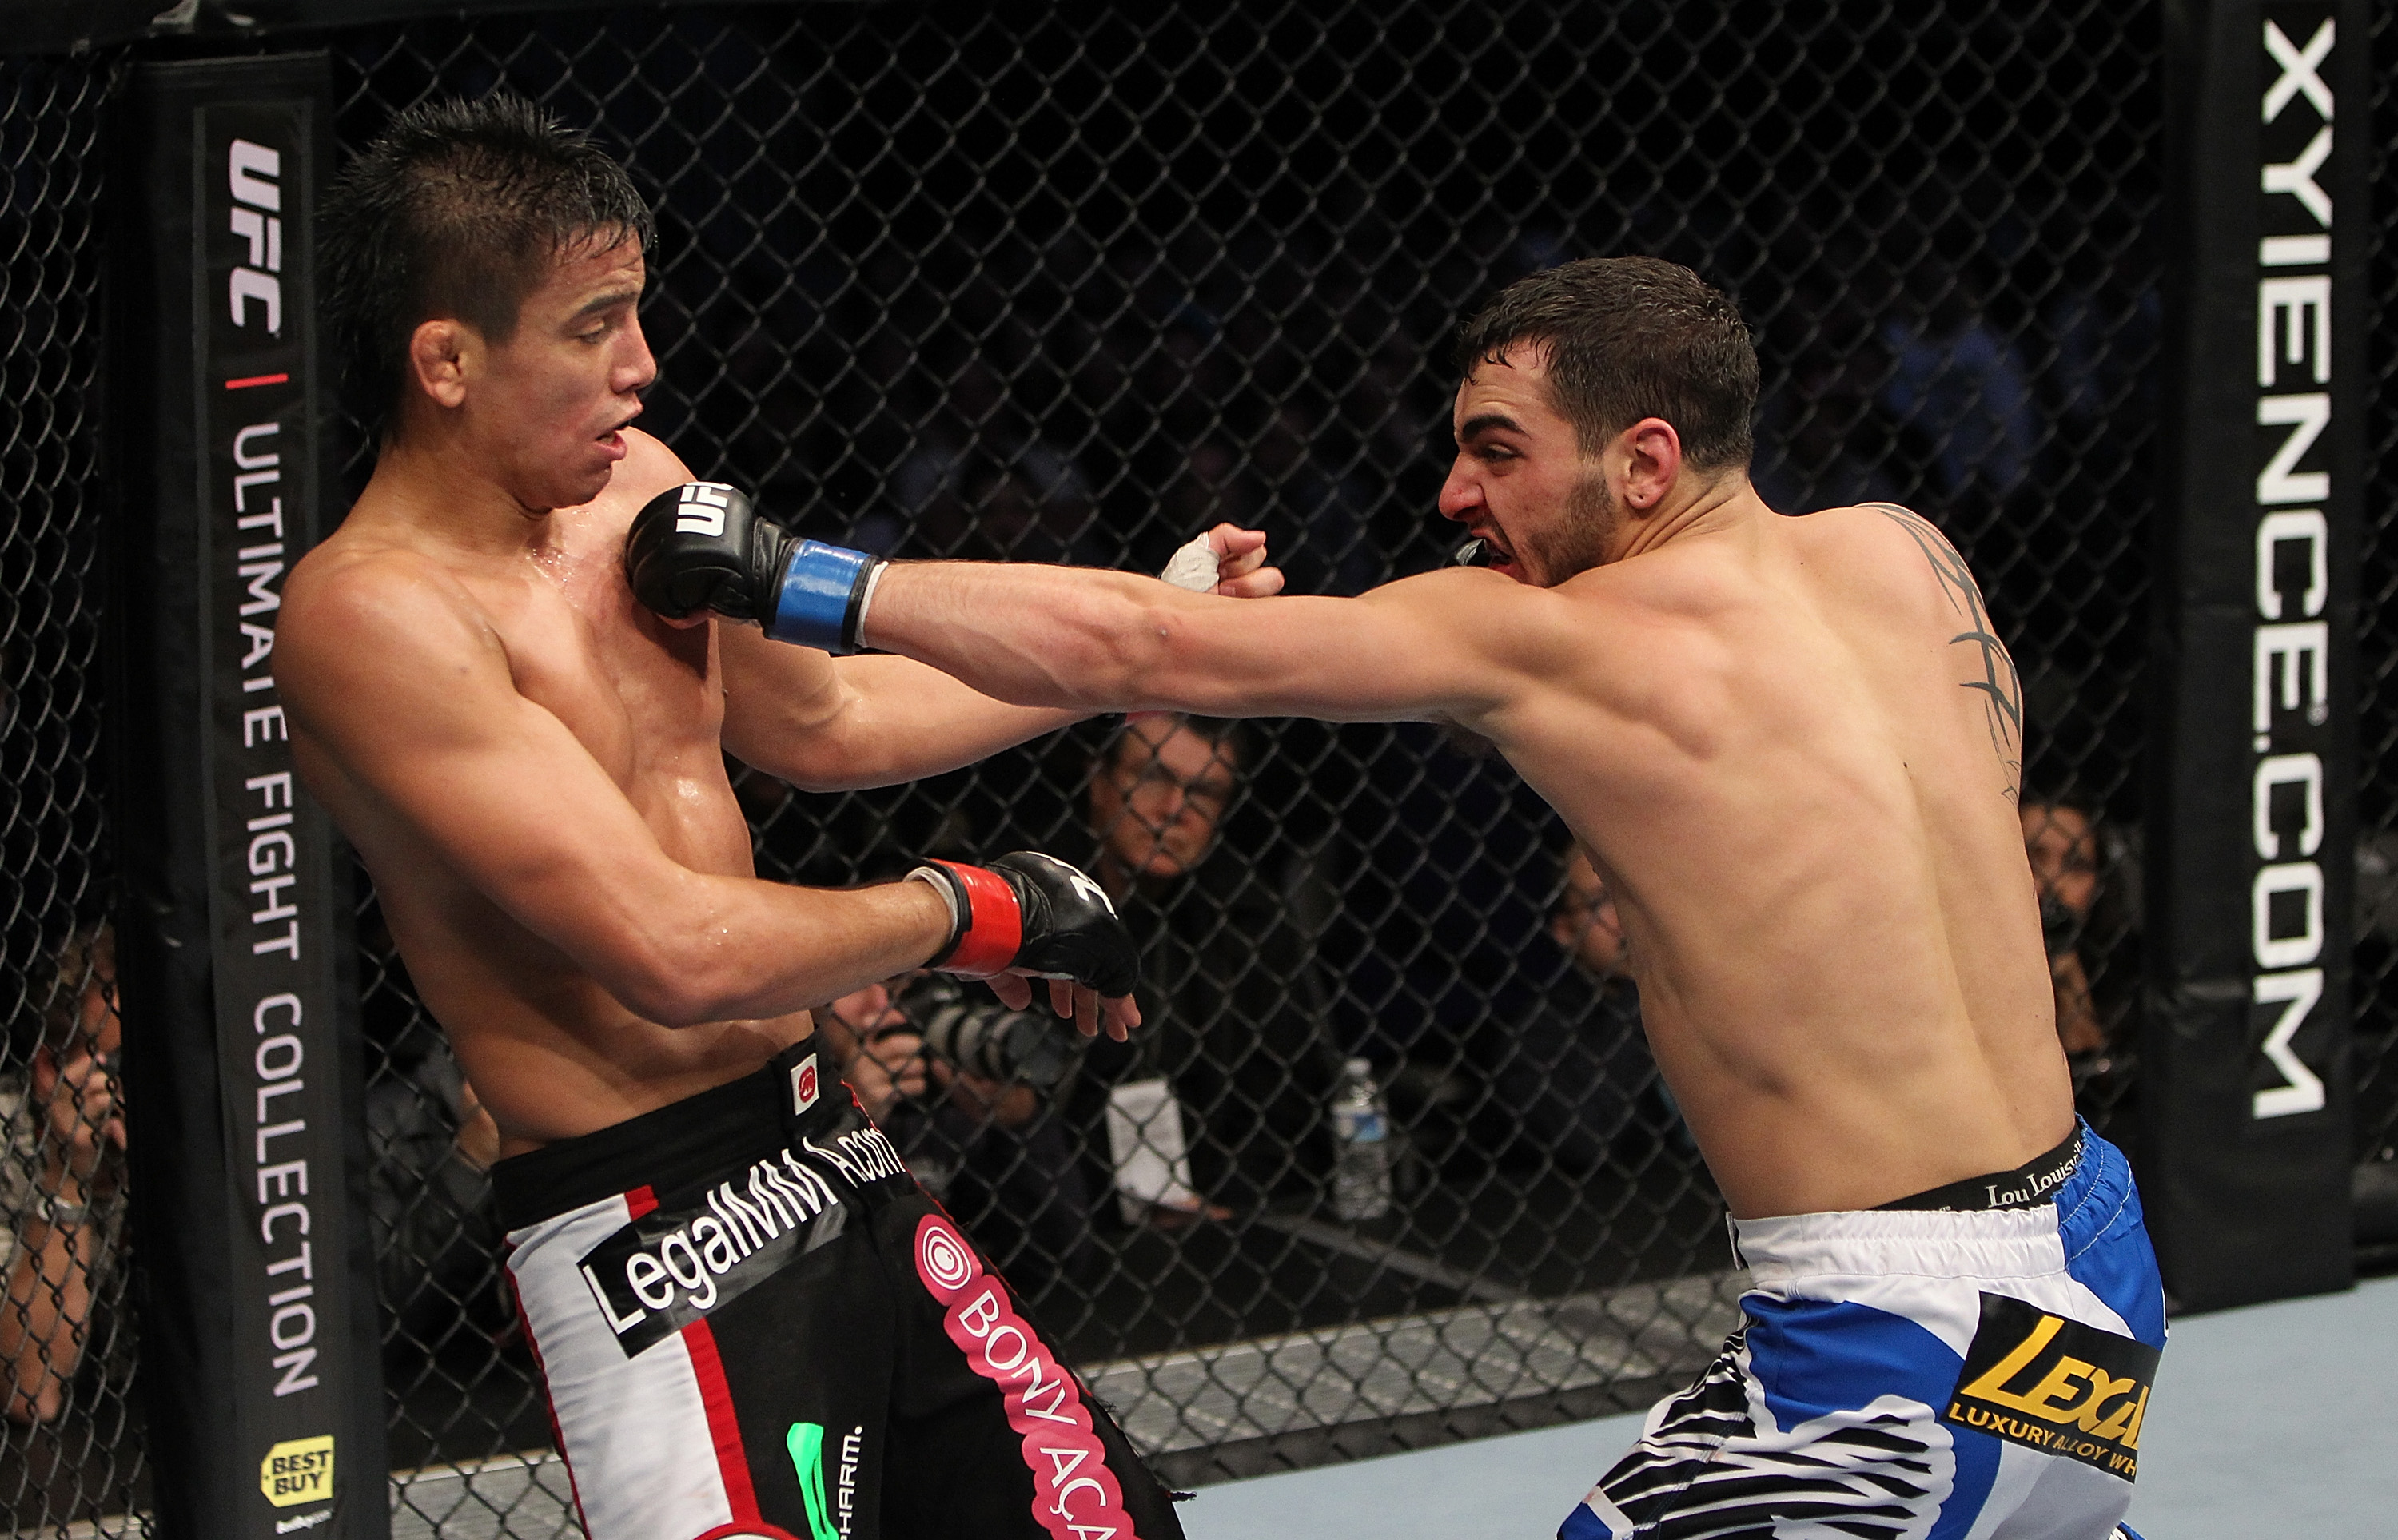 SAN JOSE, CA - NOVEMBER 19: (R-L) Nick Pace punches Miguel Torres during an UFC Bantamweight bout at the HP Pavilion in San Jose, California on November 19, 2011 in San Jose, California.  (Photo by Josh Hedges/Zuffa LLC/Zuffa LLC via Getty Images)